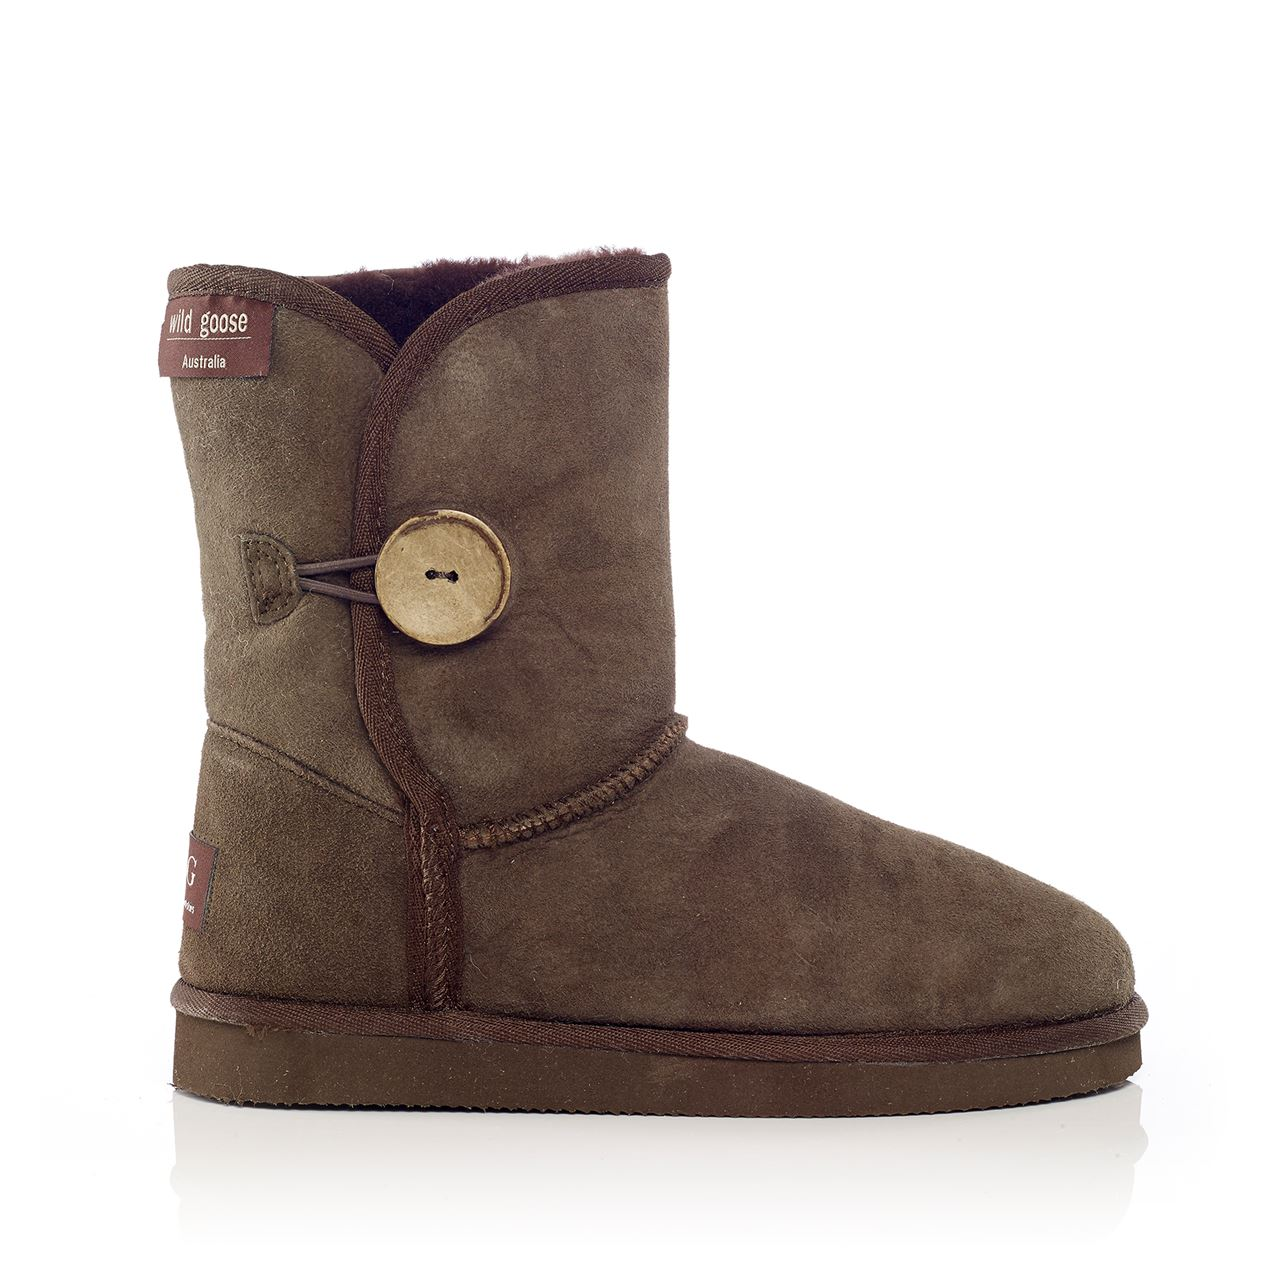 Shop Dillard's for UGG boots, slippers, accessories, home, and lingerie. Exclusive UGG boot styles, slippers for men and women, rainboots and sneakers made of the finest materials can be found by shopping Dillard's.